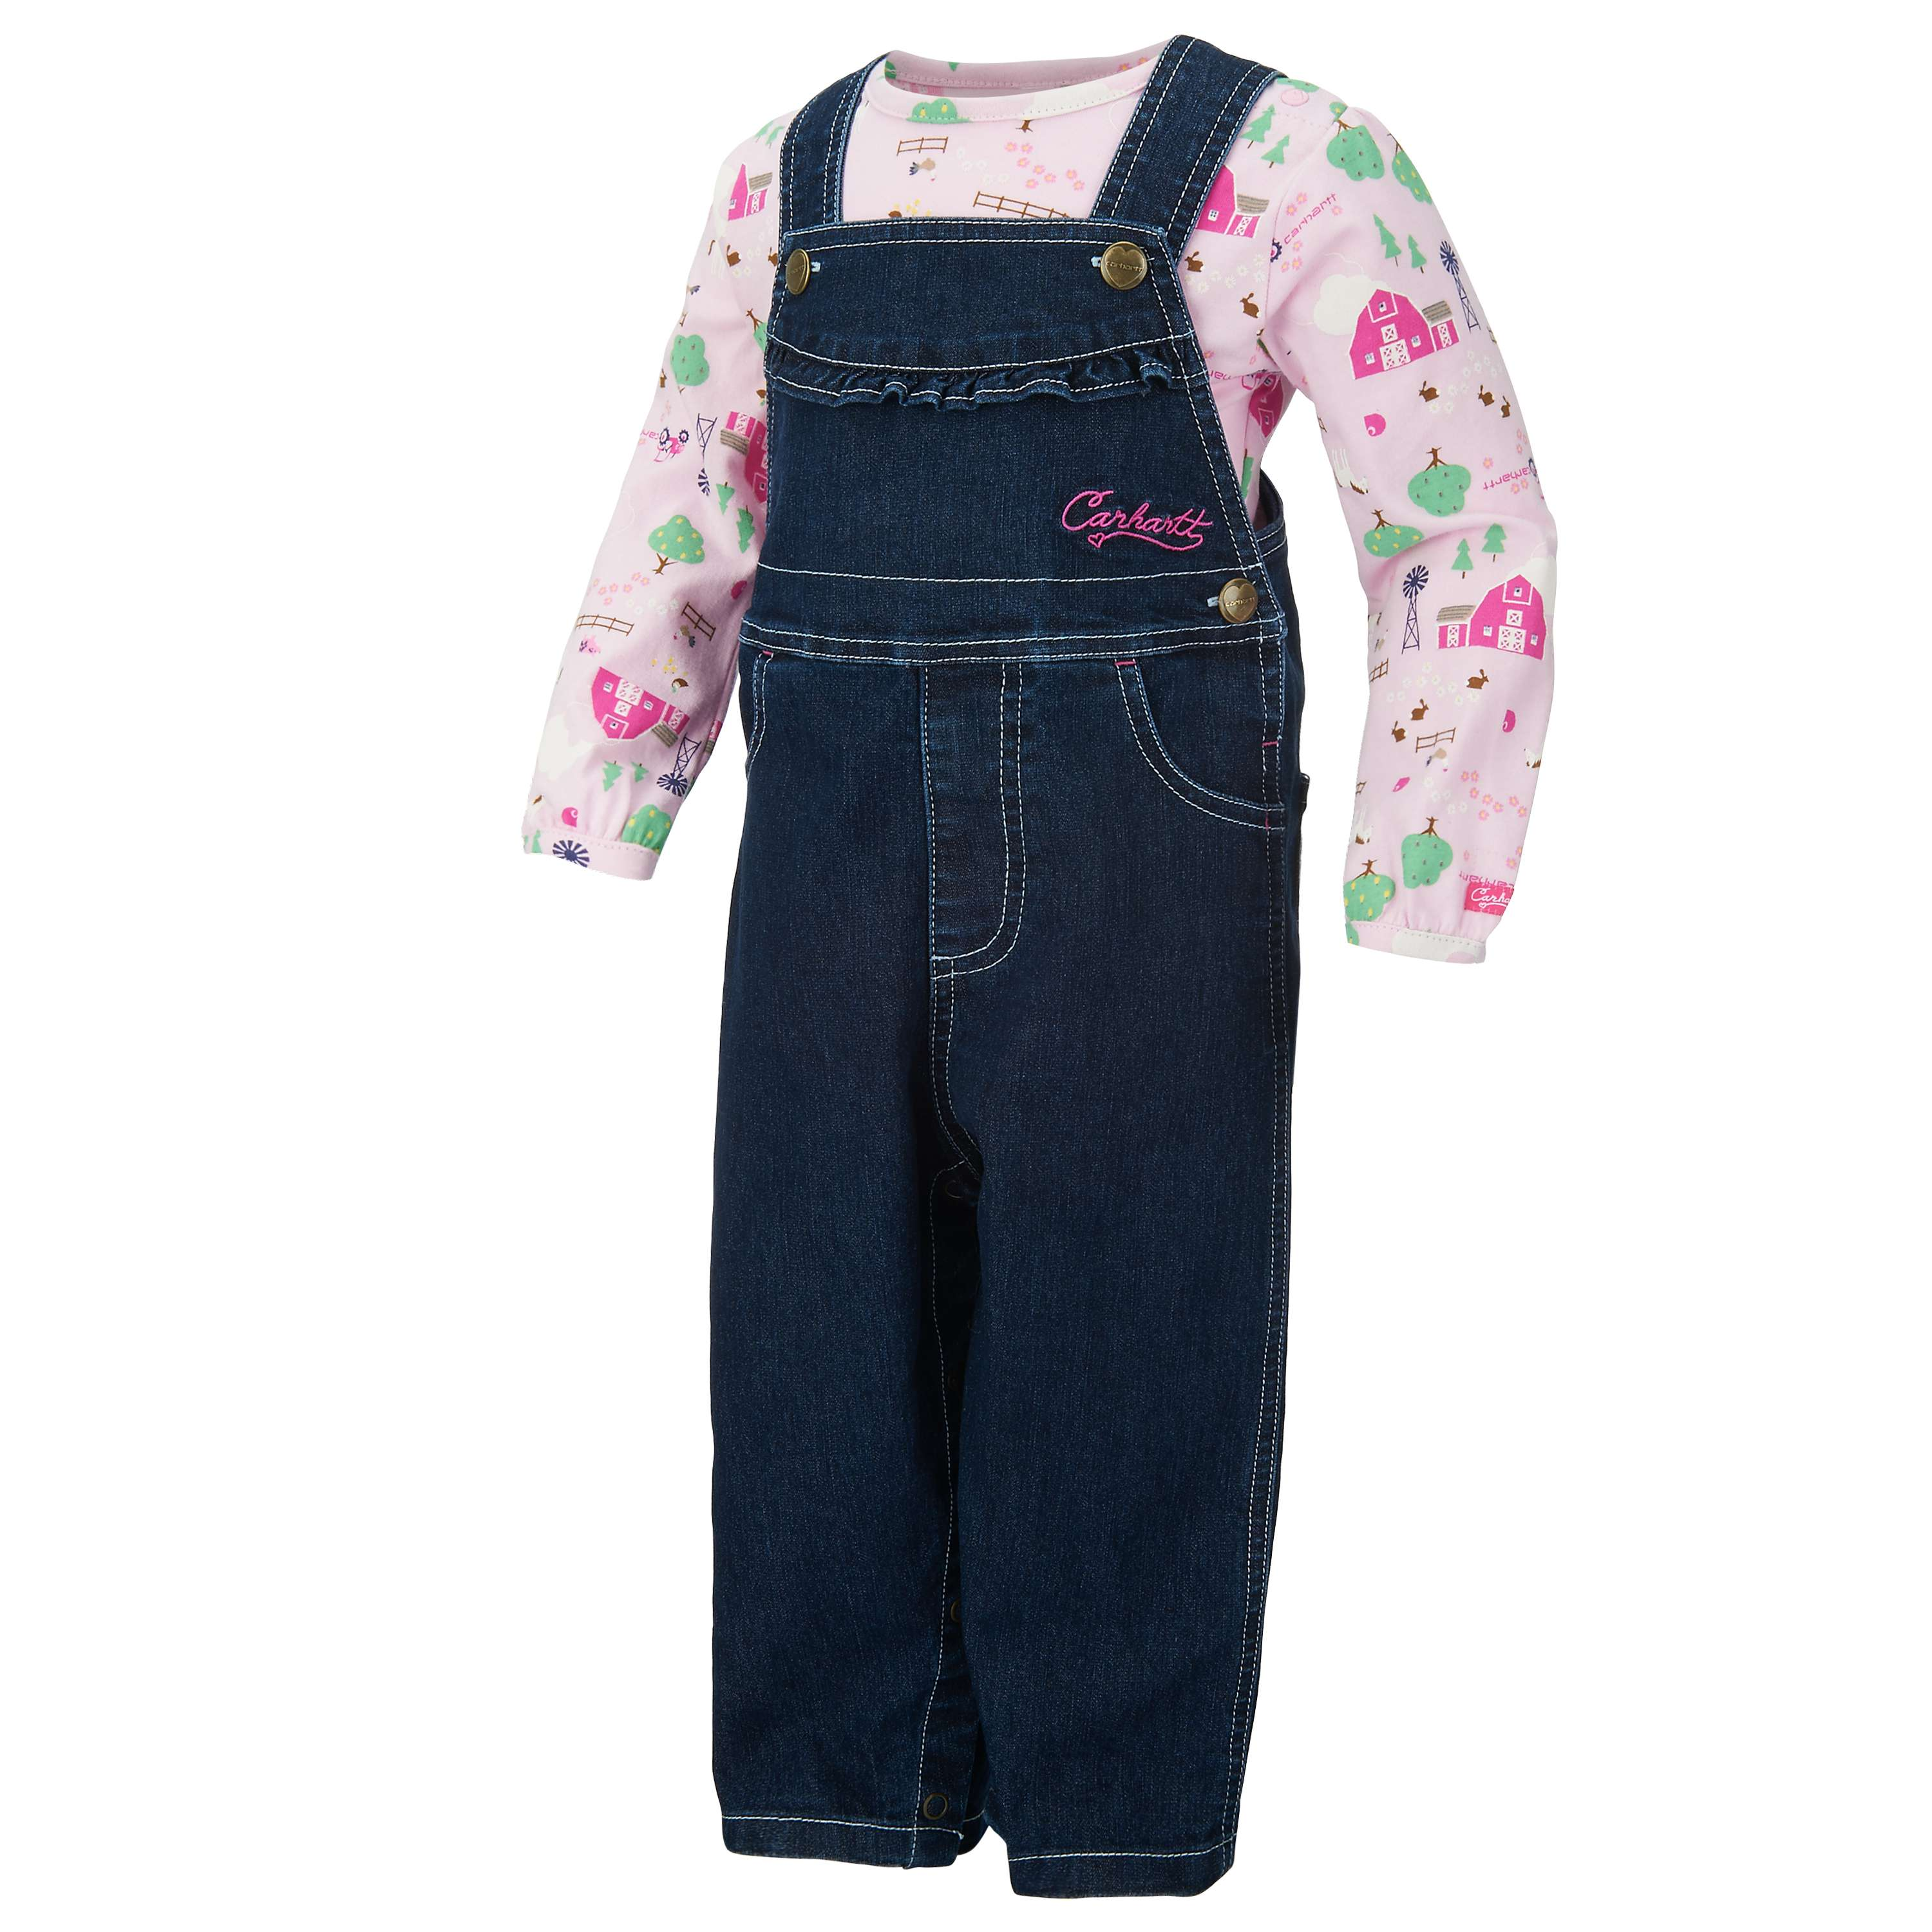 Carhartt Little Pink Barn Overall Set